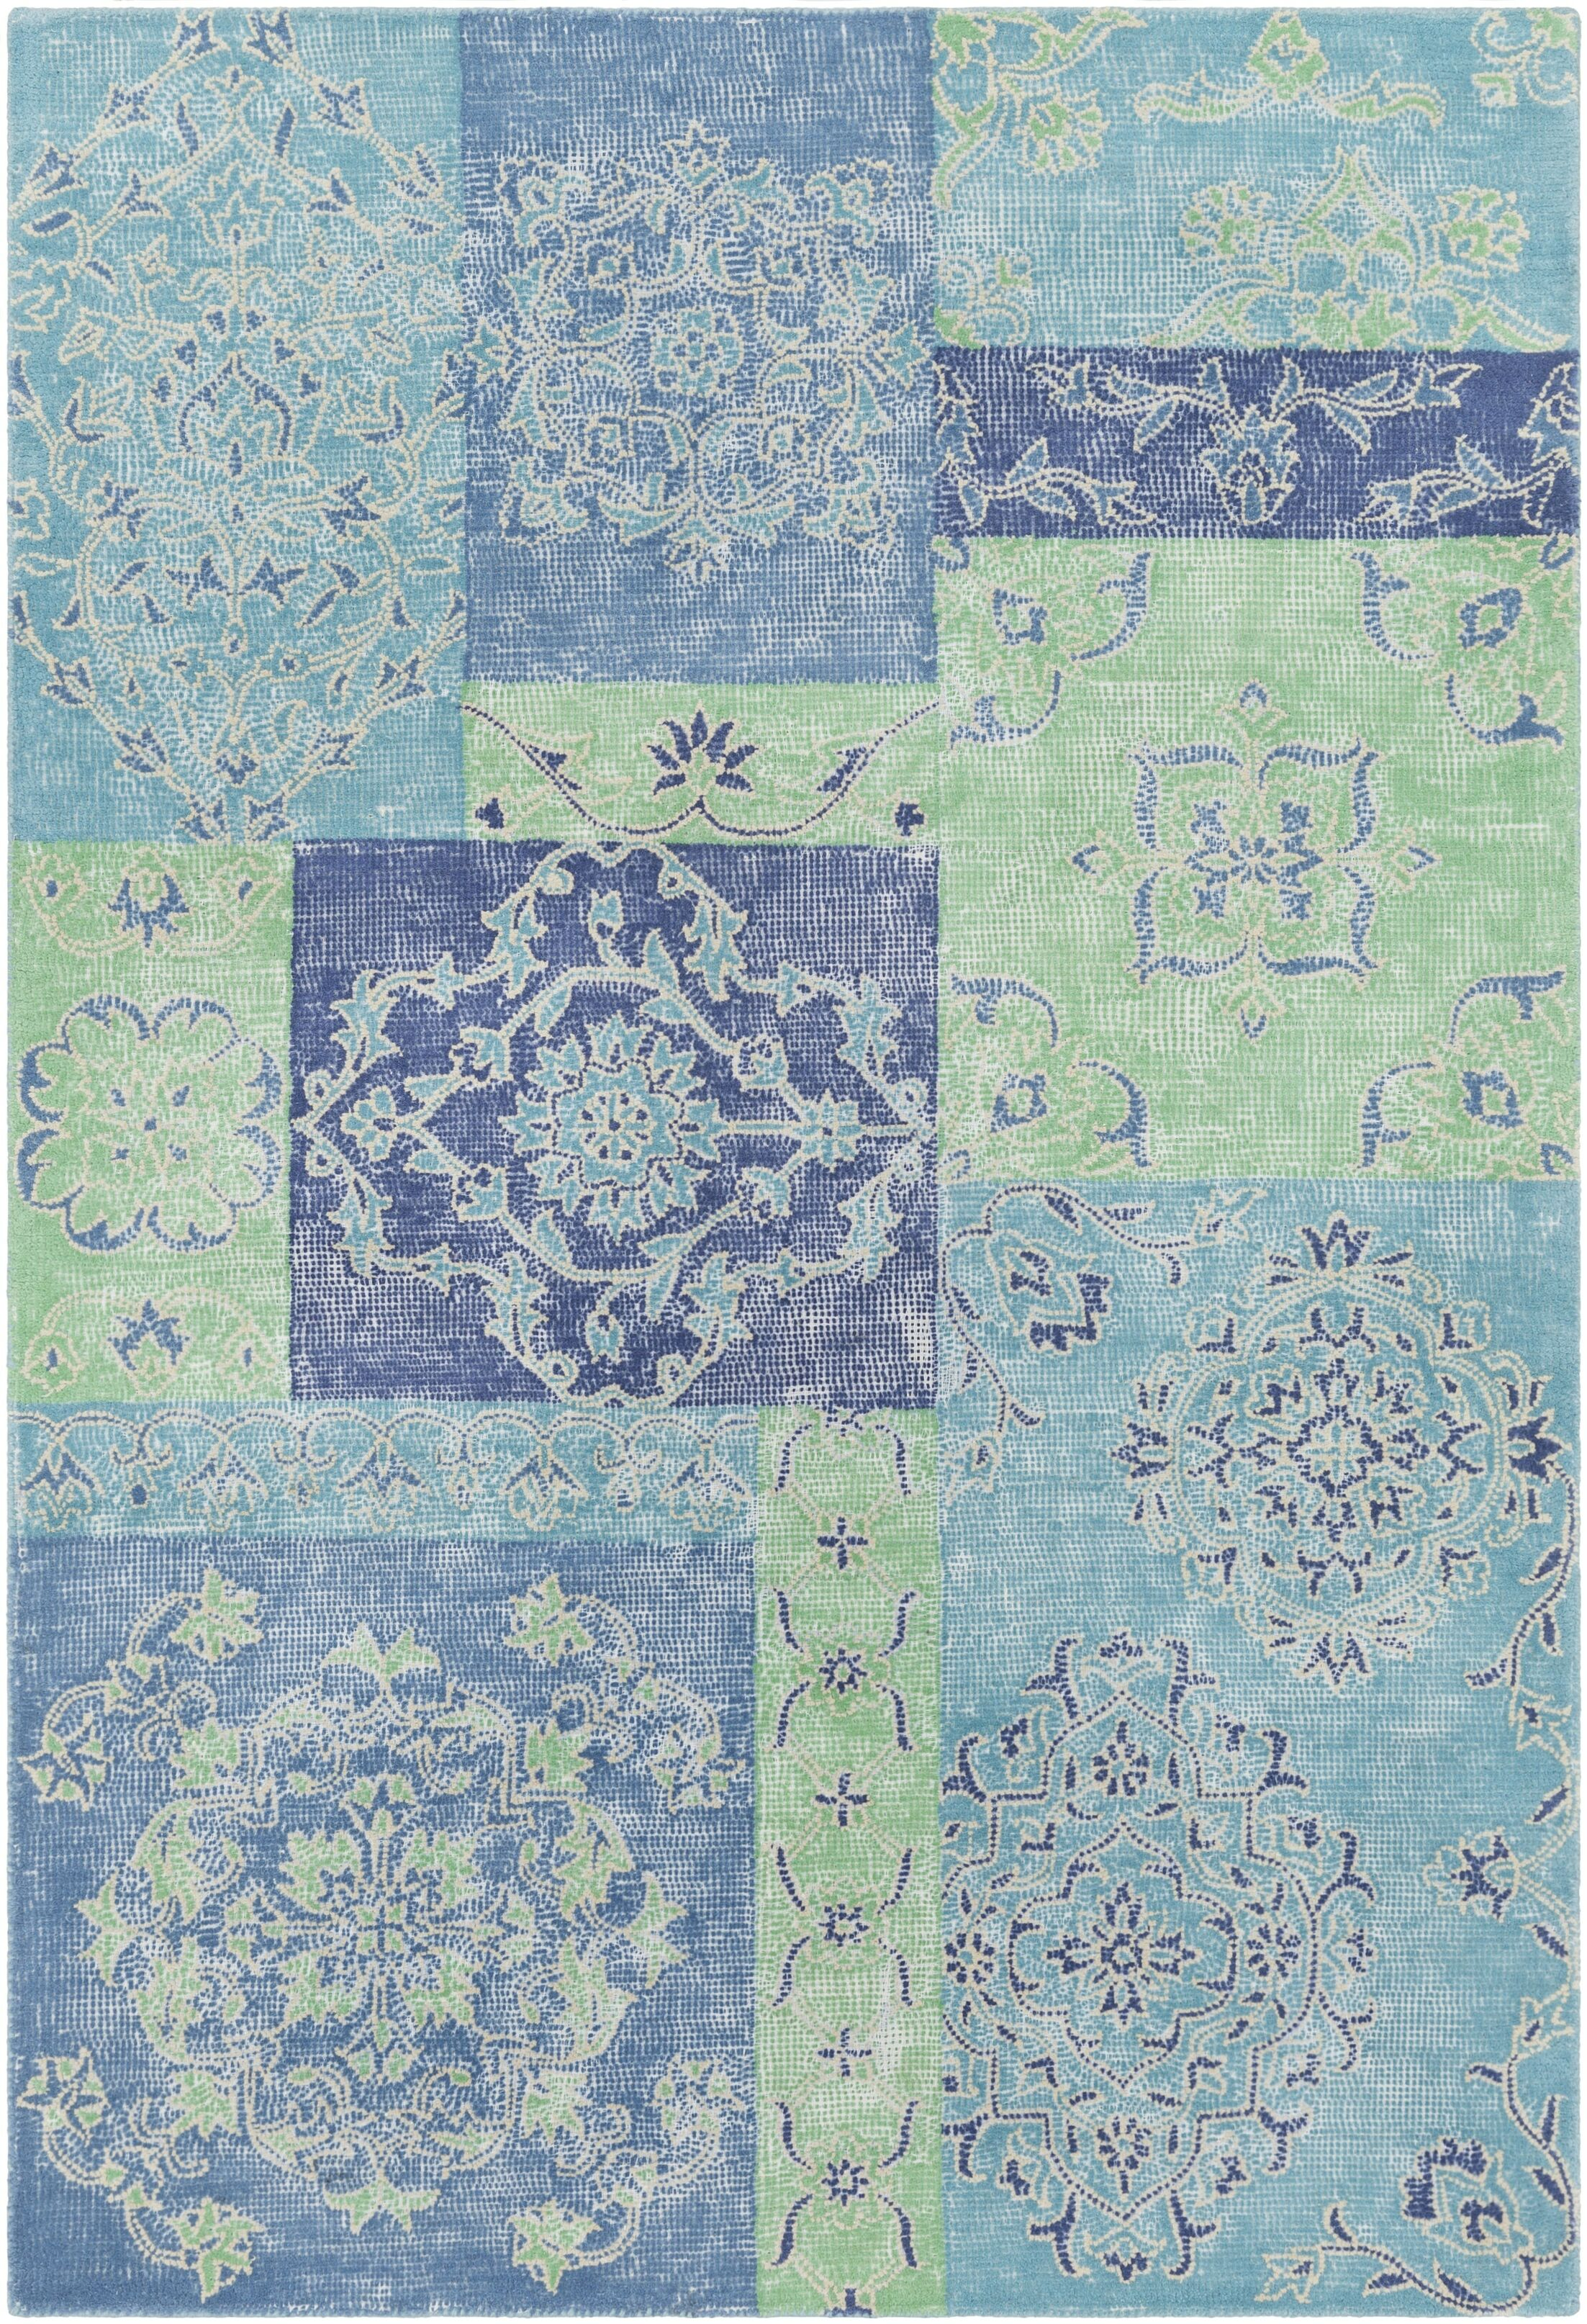 Knowland Hand-Tufted Denim/Teal Area Rug Rug Size: Rectangle 5' x 7'6